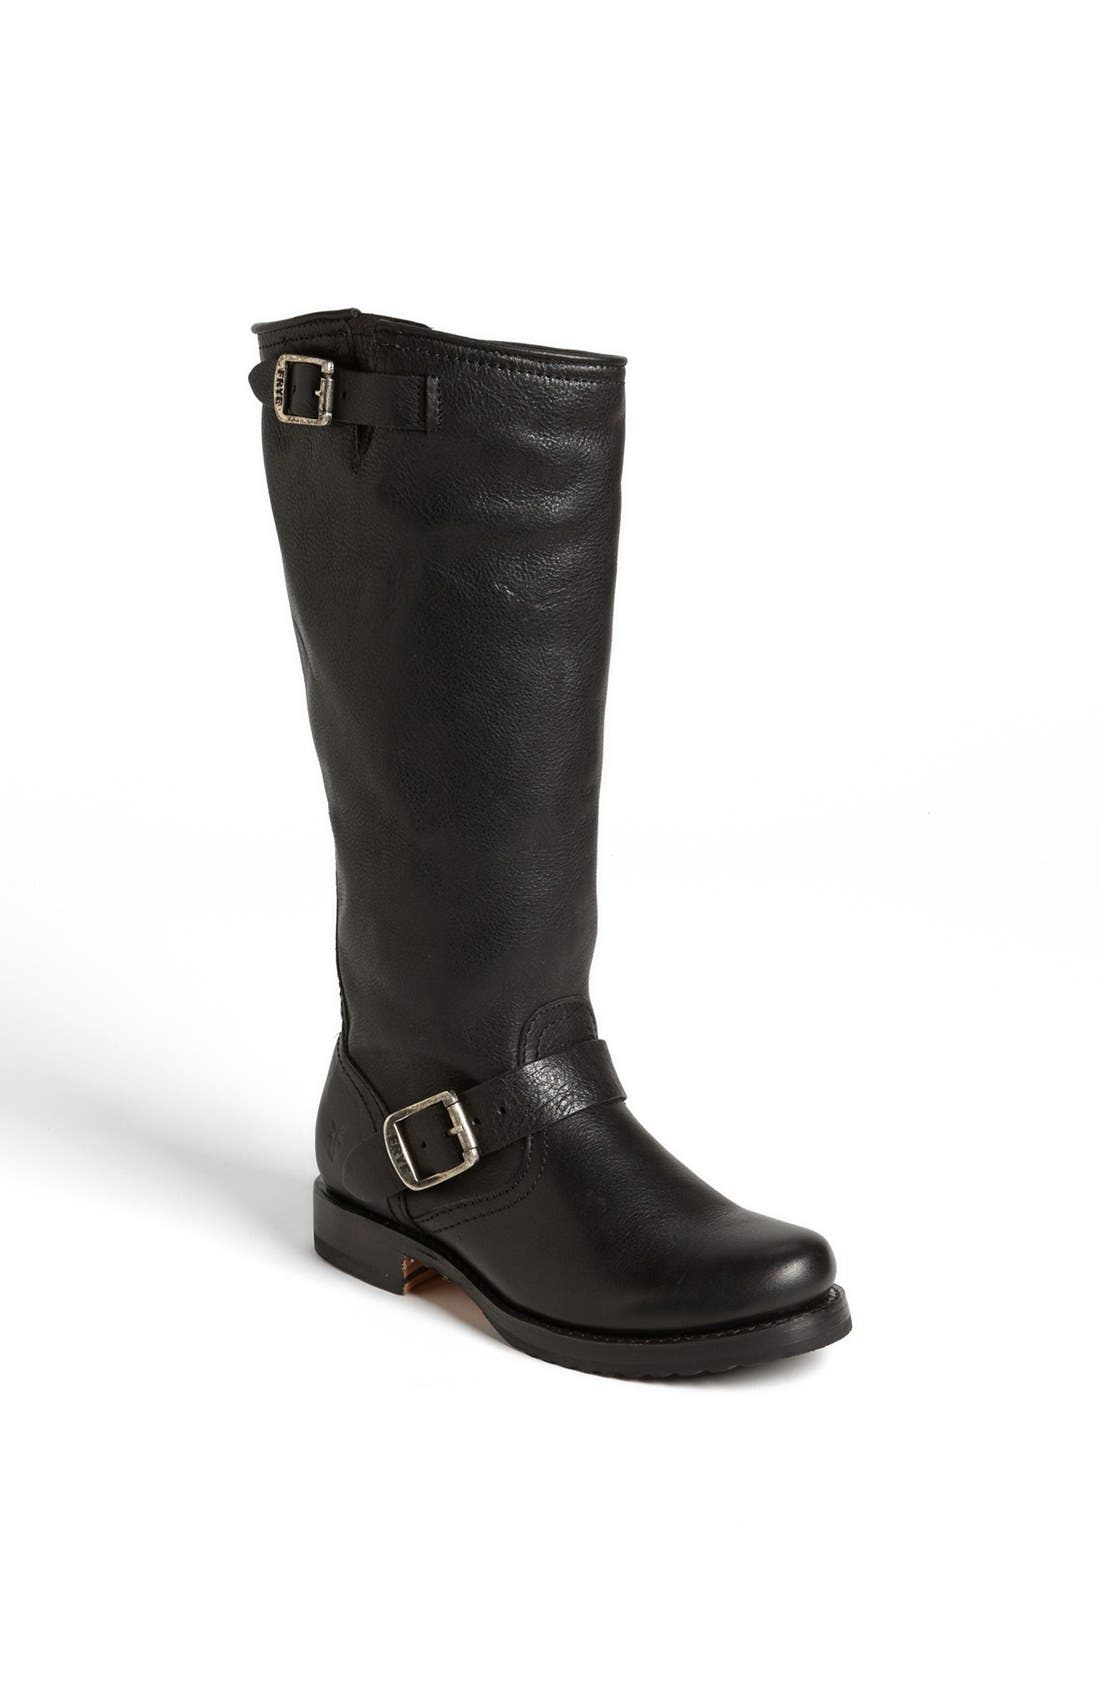 Alternate Image 1 Selected - Frye 'Veronica Slouch' Boot (Wide Calf) (Women)